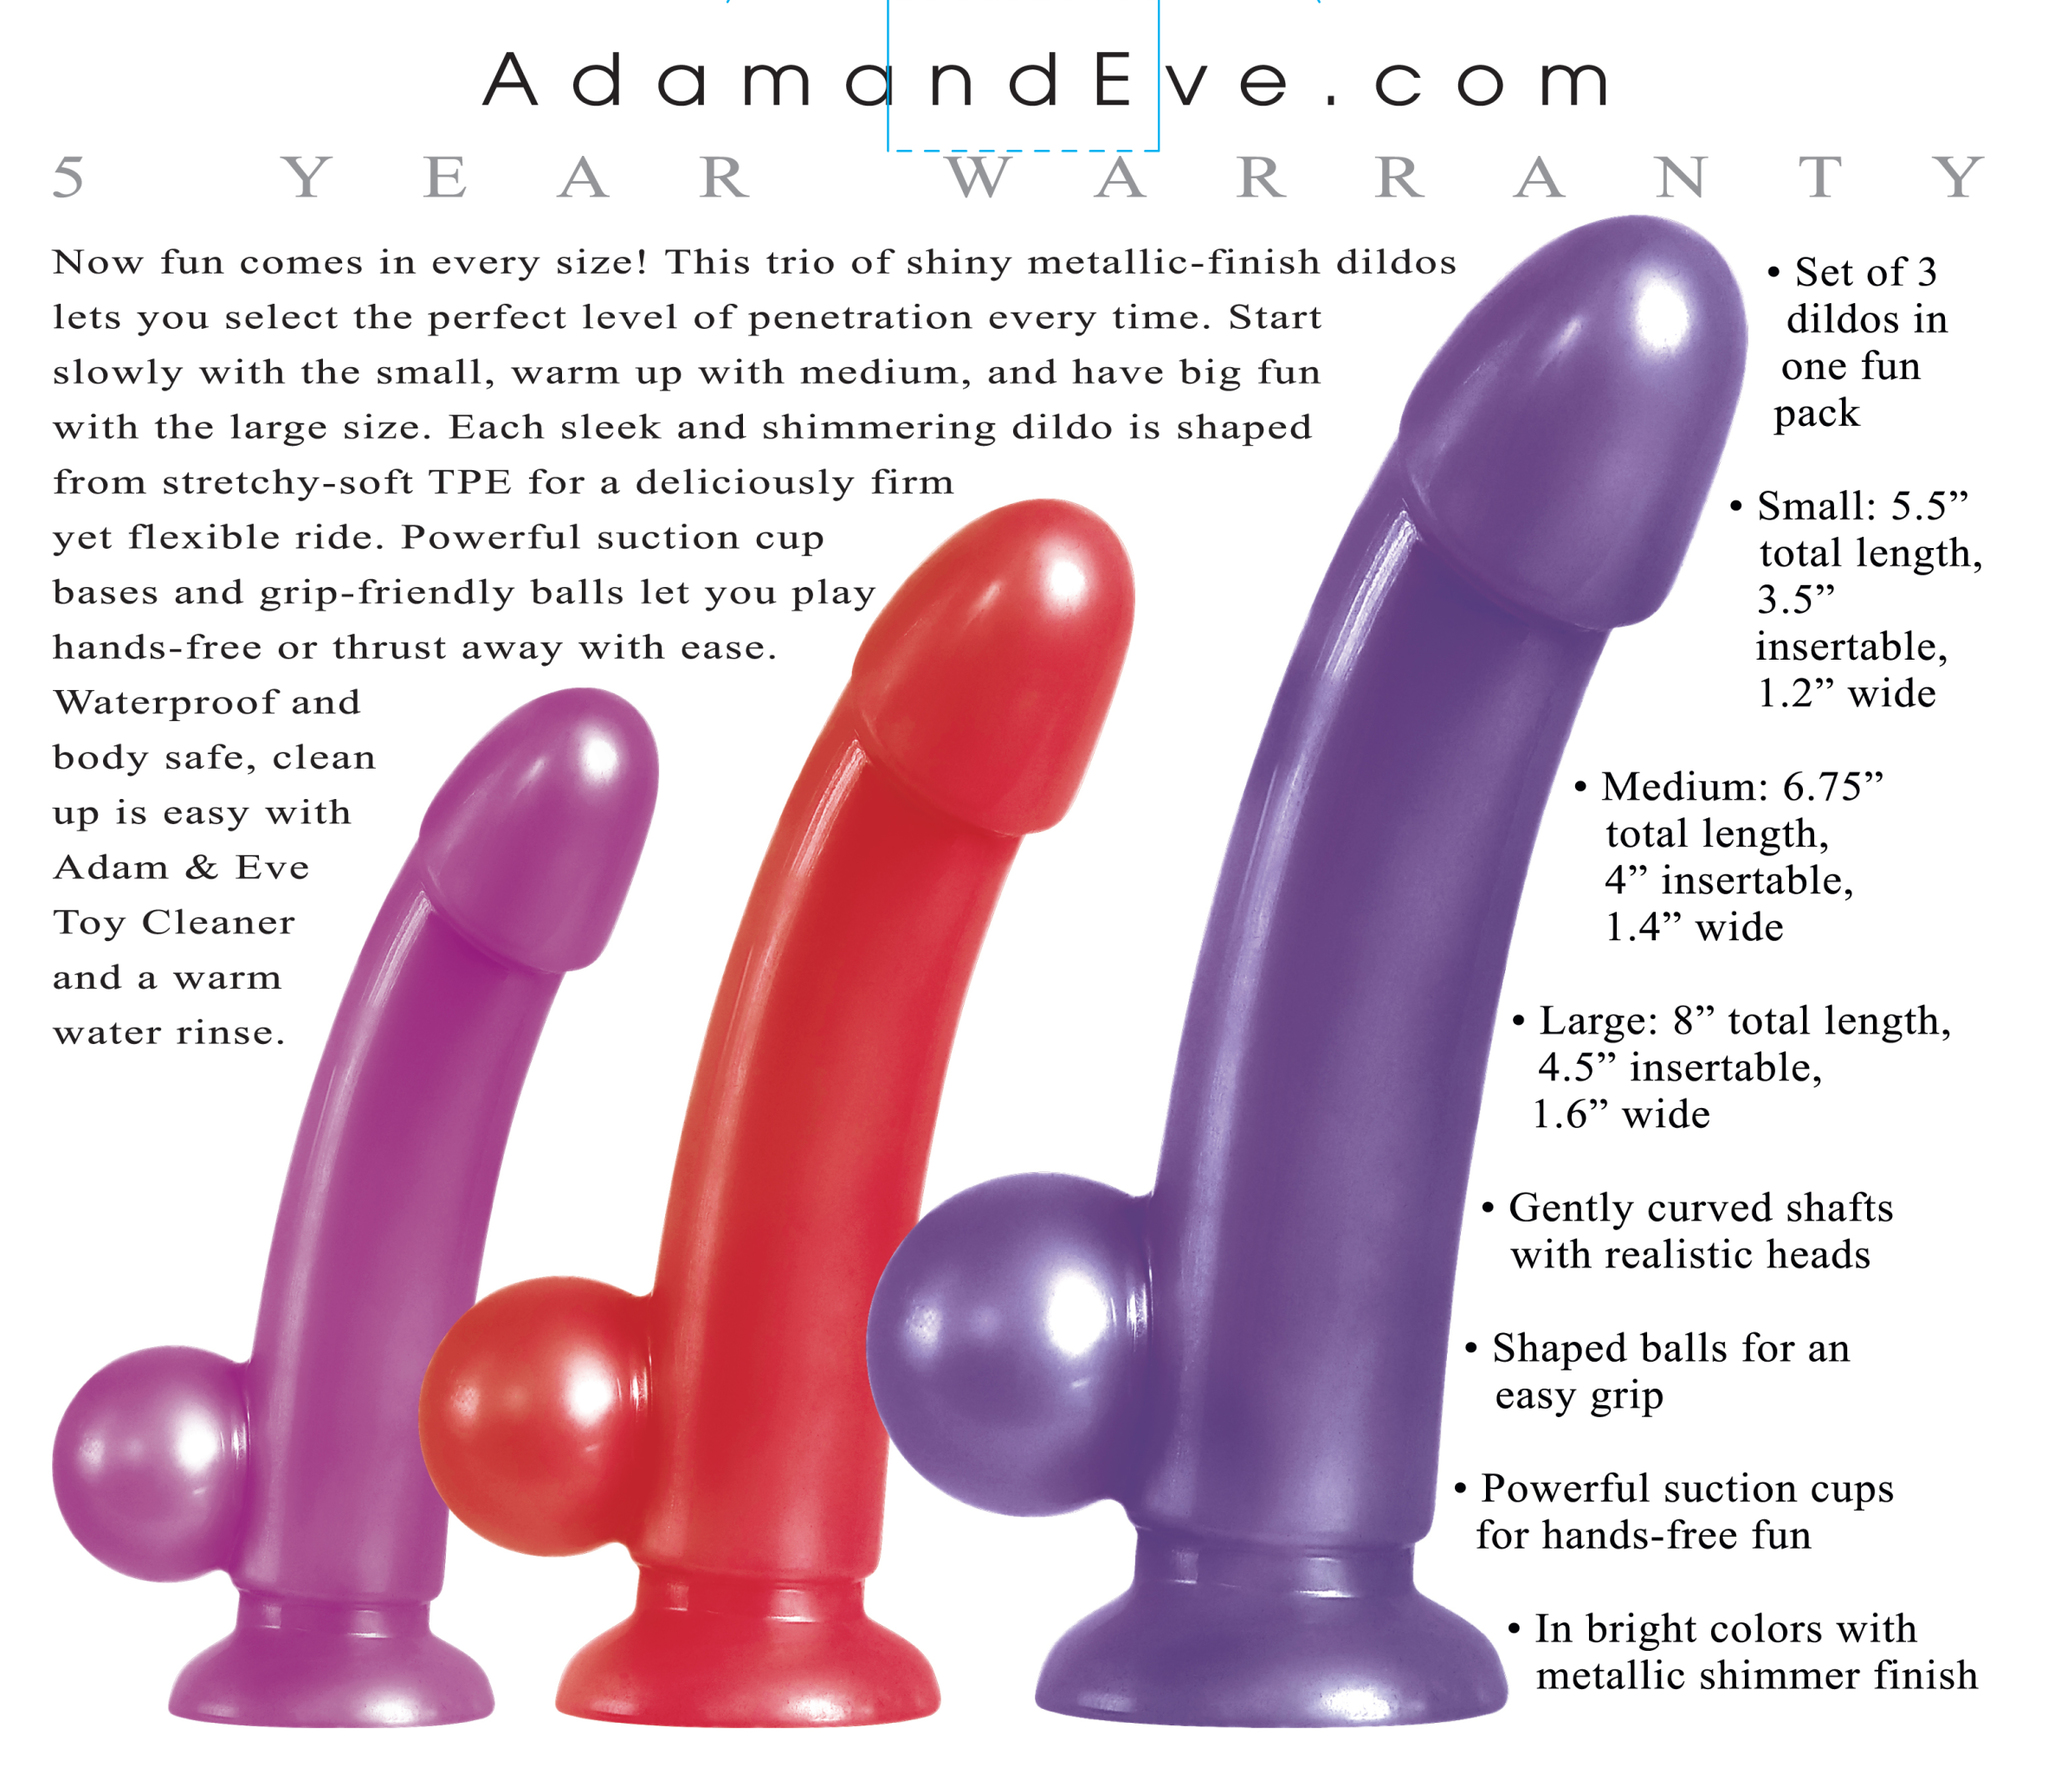 Eves-dildo-fun-pack-back.jpg